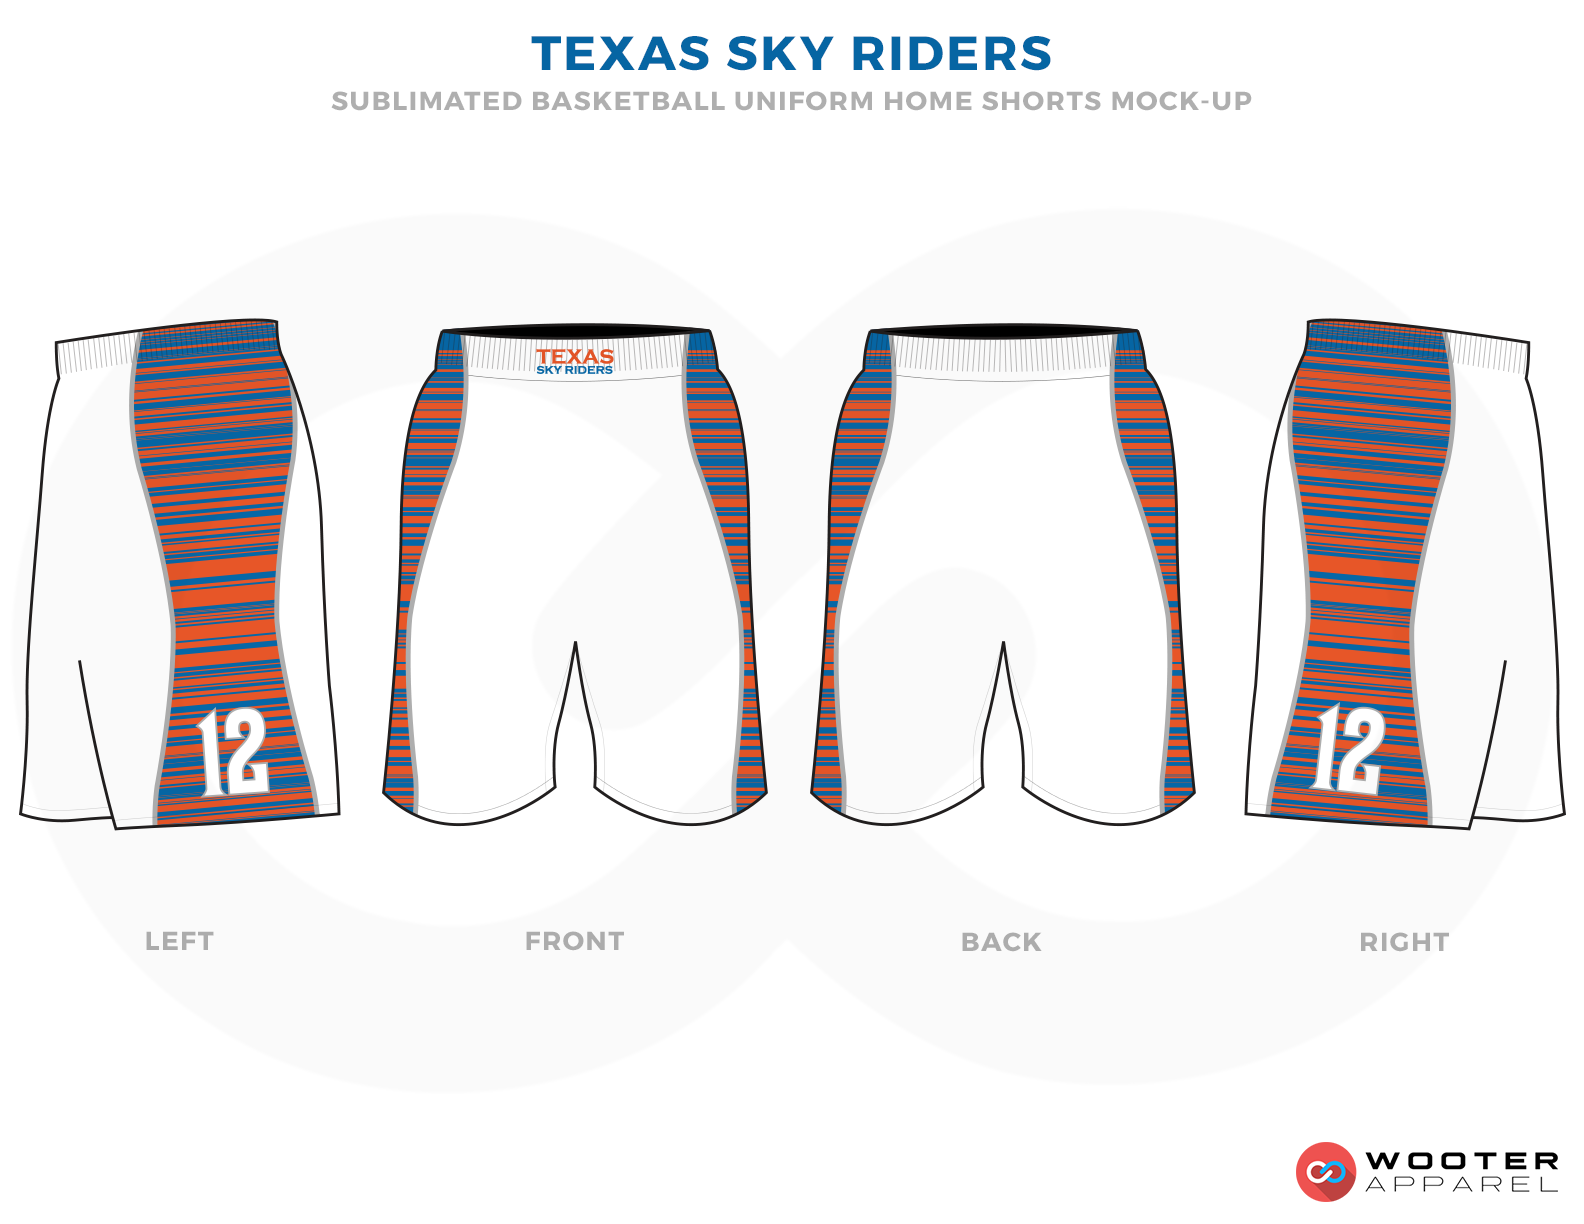 TEXAS SKY RIDERS White Orange and Blue Basketball Uniforms, Shorts